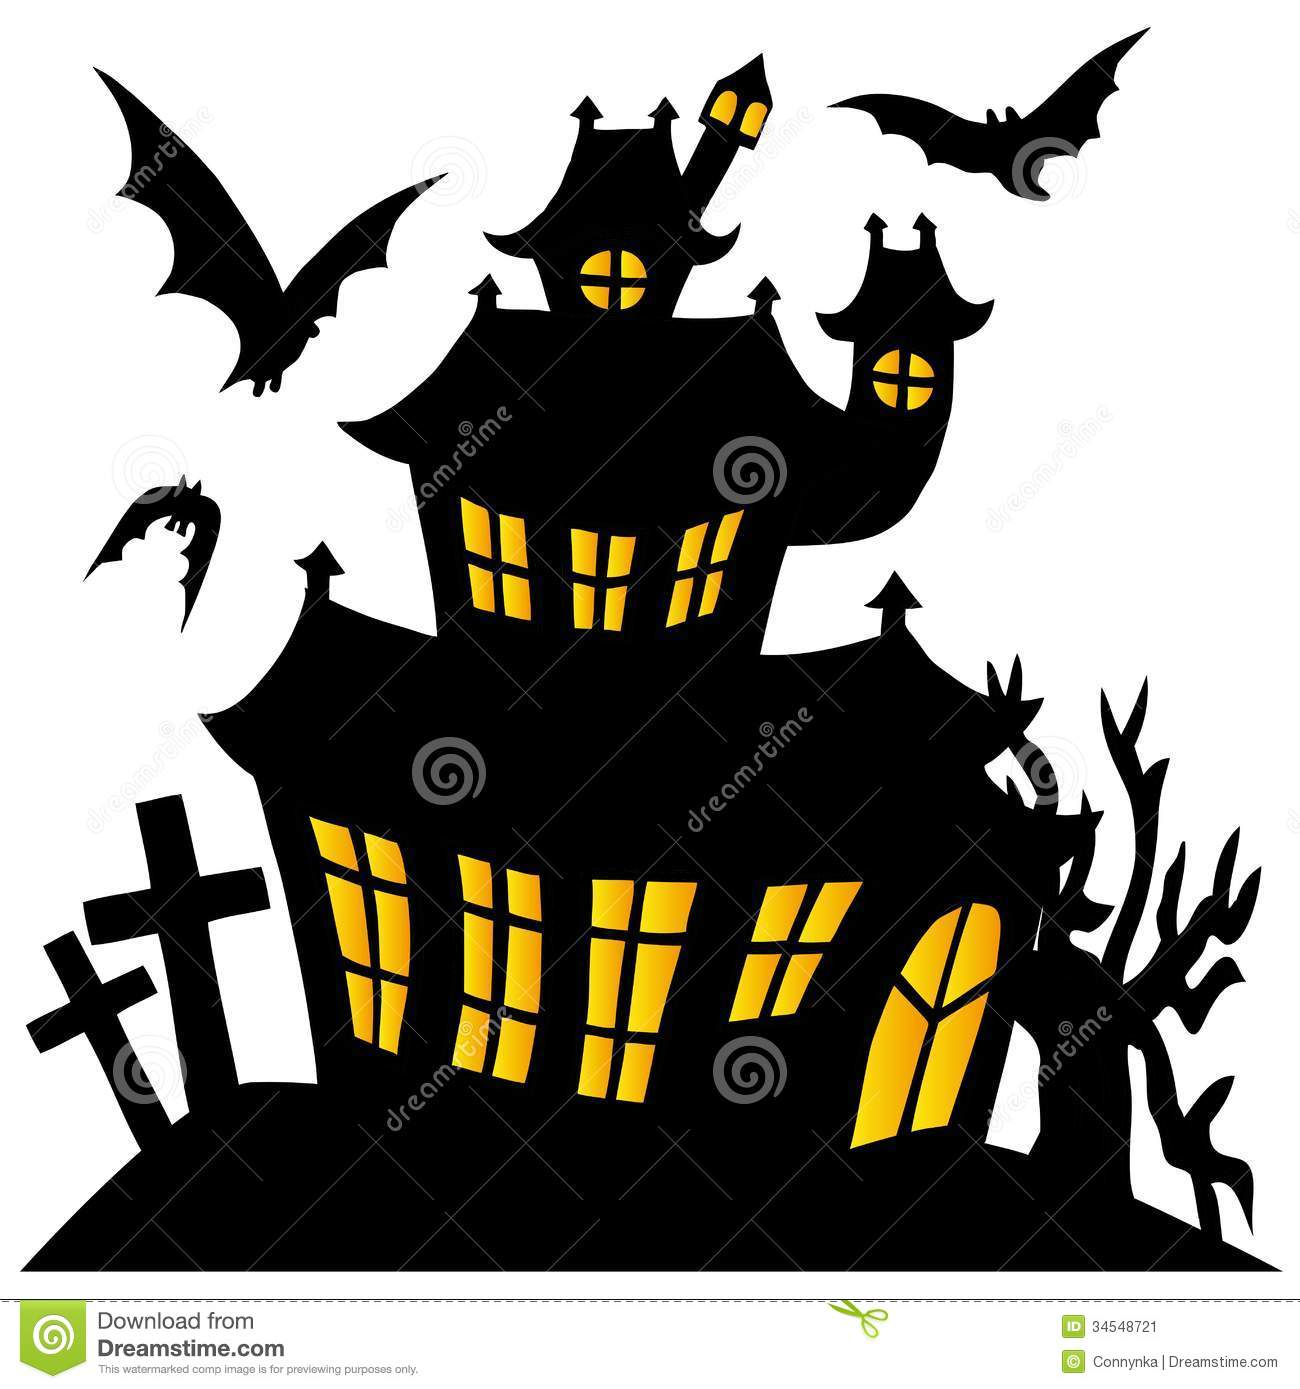 Haunted House Silhouette Silhouette Spooky House Vector Illustration